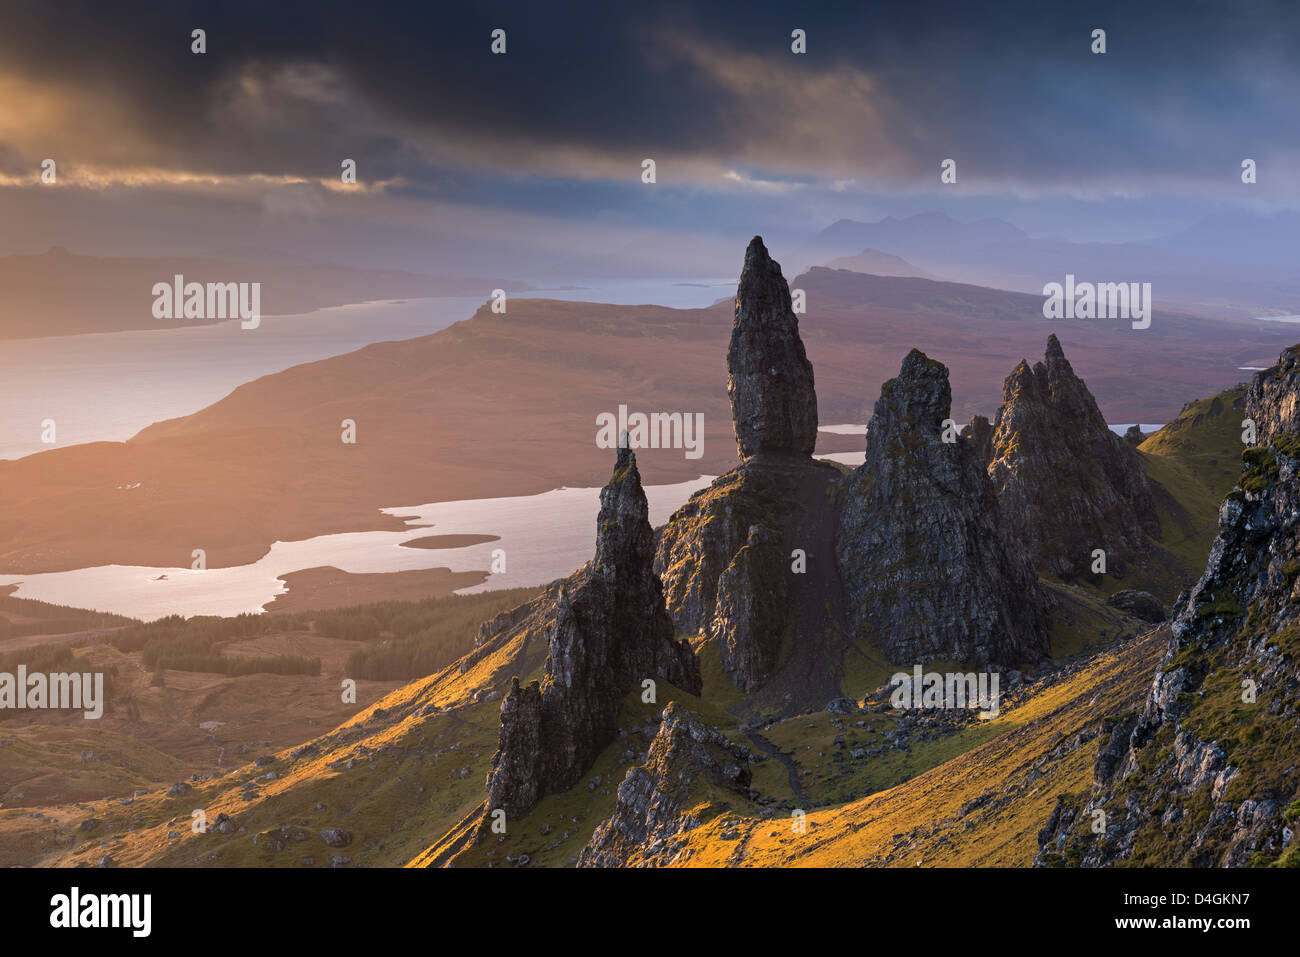 Old Man of Storr basalt pinnacles on the Isle of Skye, Scotland. Winter (November) 2012. Stock Photo